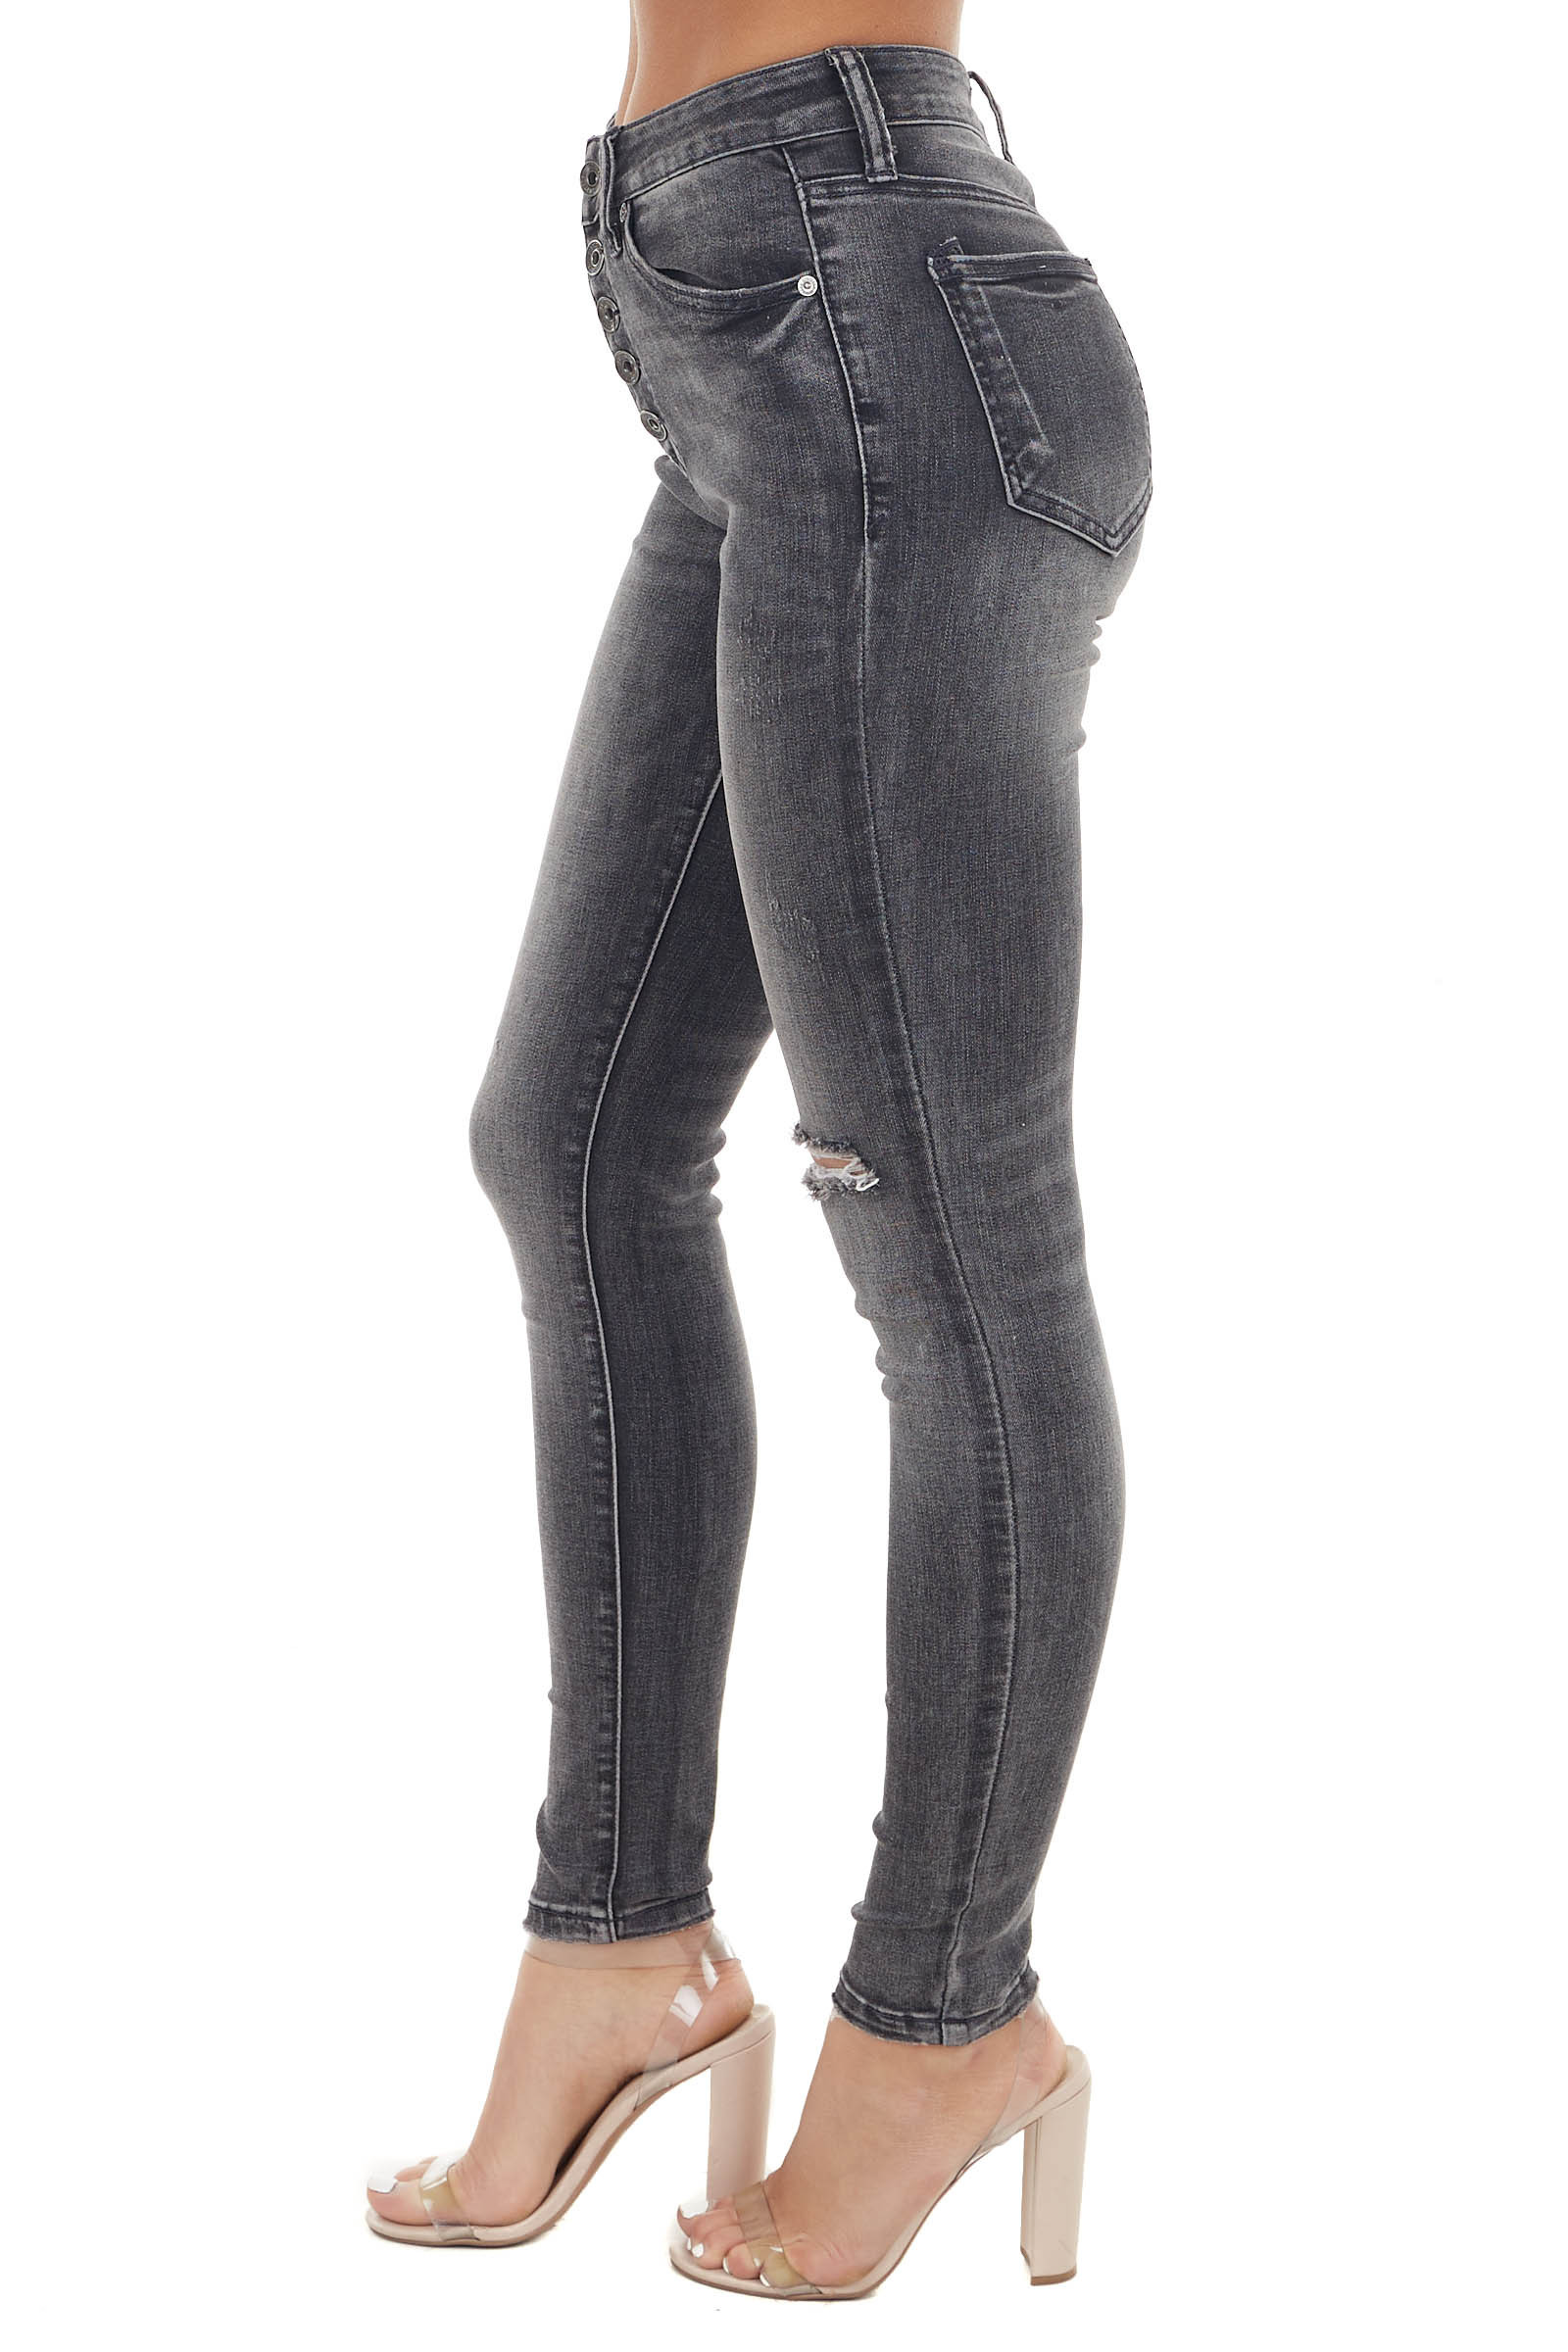 Grey Mid Rise Skinny Button Fly Jeans with Distressed Detail